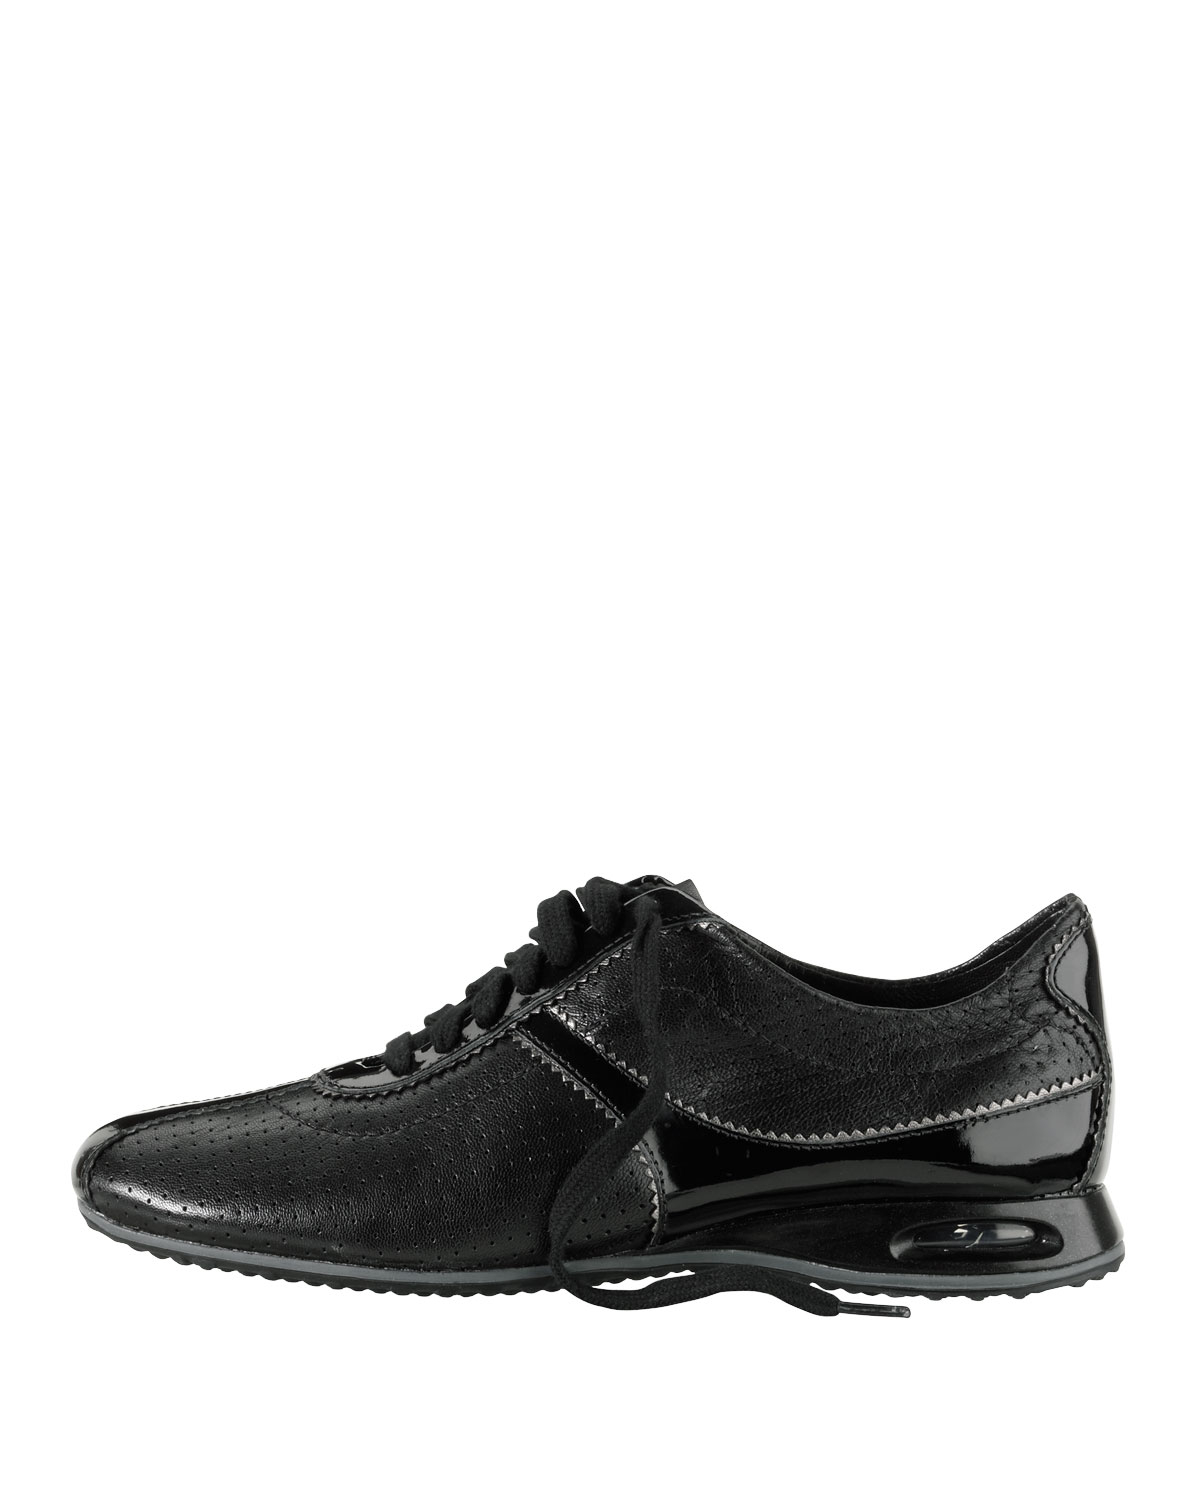 Cole Haan Shoes With Nike Air Soles